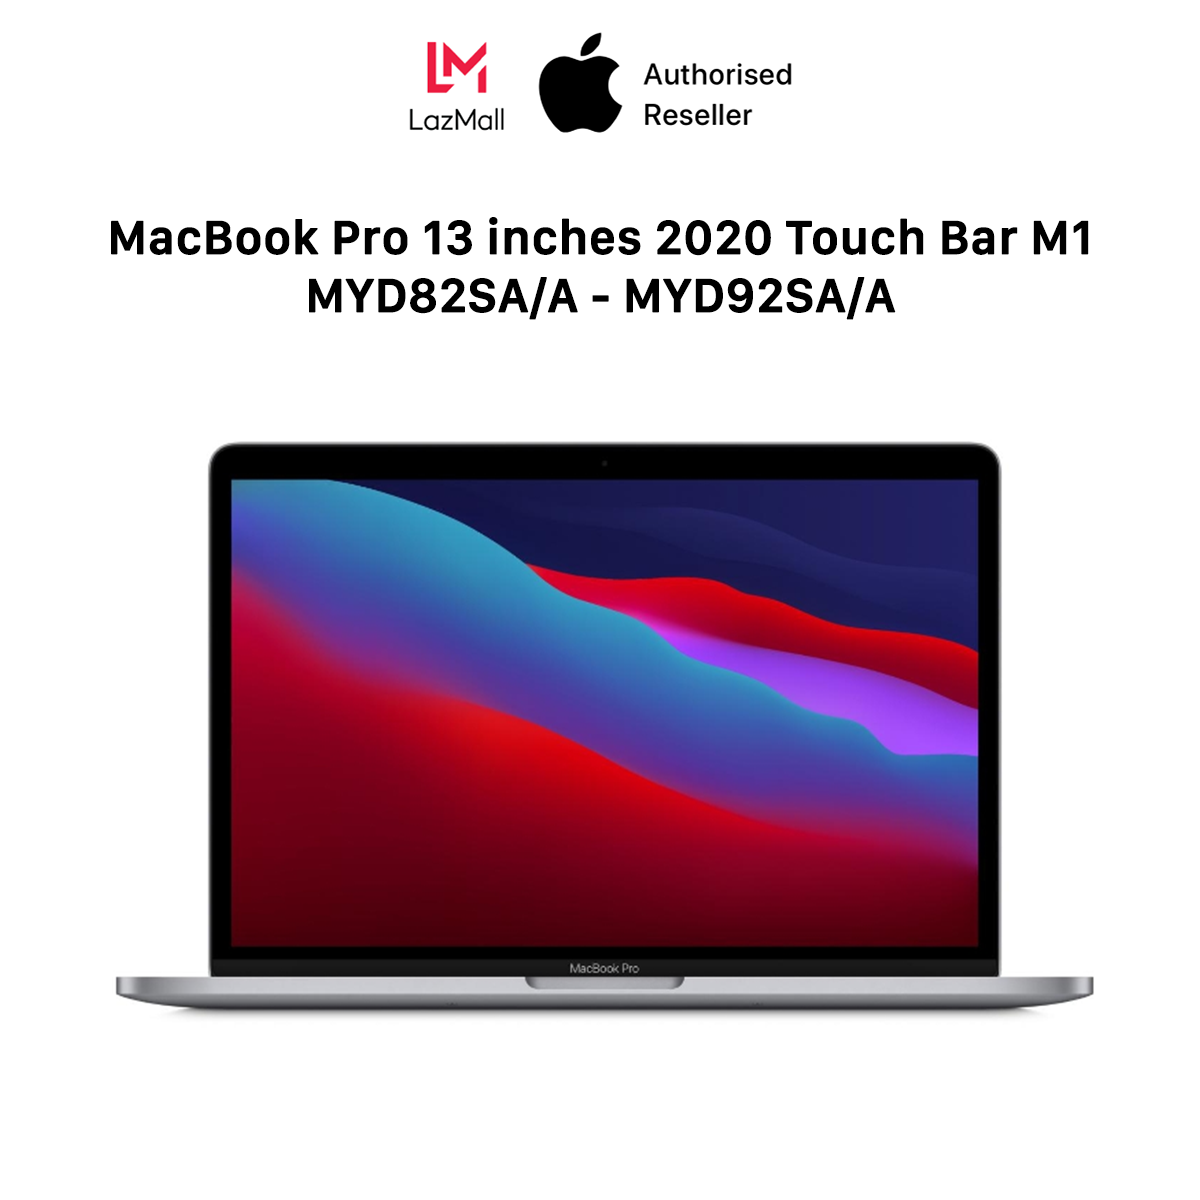 [TẶNG MICROSOFT 365 1 NĂM] MacBook Pro 13 inches Touch Bar M1 Chipset (8GB/16GB – 256GB/512GB) – 100% New (Not Activated, Not Used) – 12 Months Warranty At Apple Service – 0% Installment Payment via Credit card